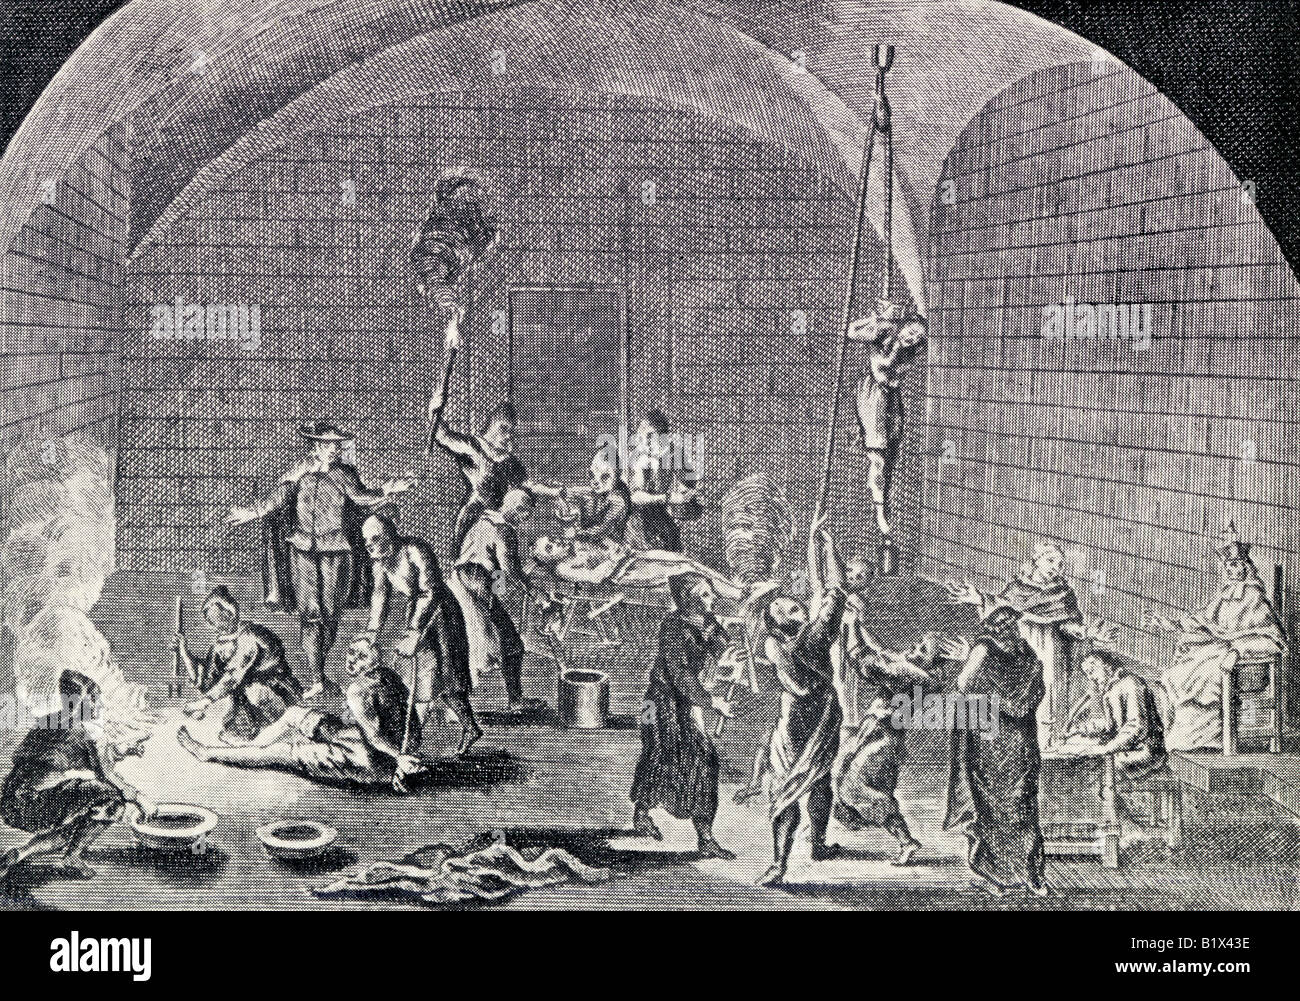 The Torture Chamber of the Spanish Inquisition - Stock Image